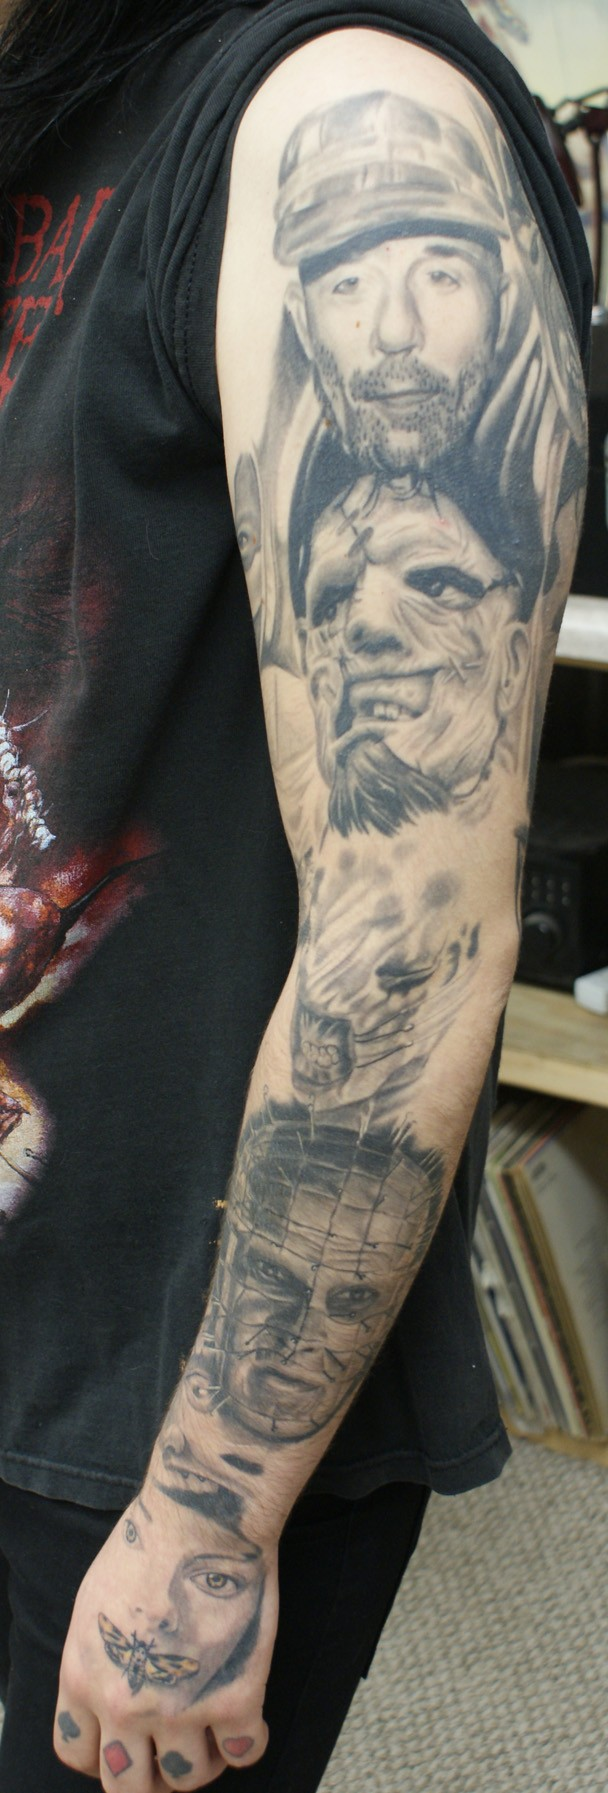 Horror Portrait Sleeve Best Portrait Tattoo Artist Tampa Ideas And Designs